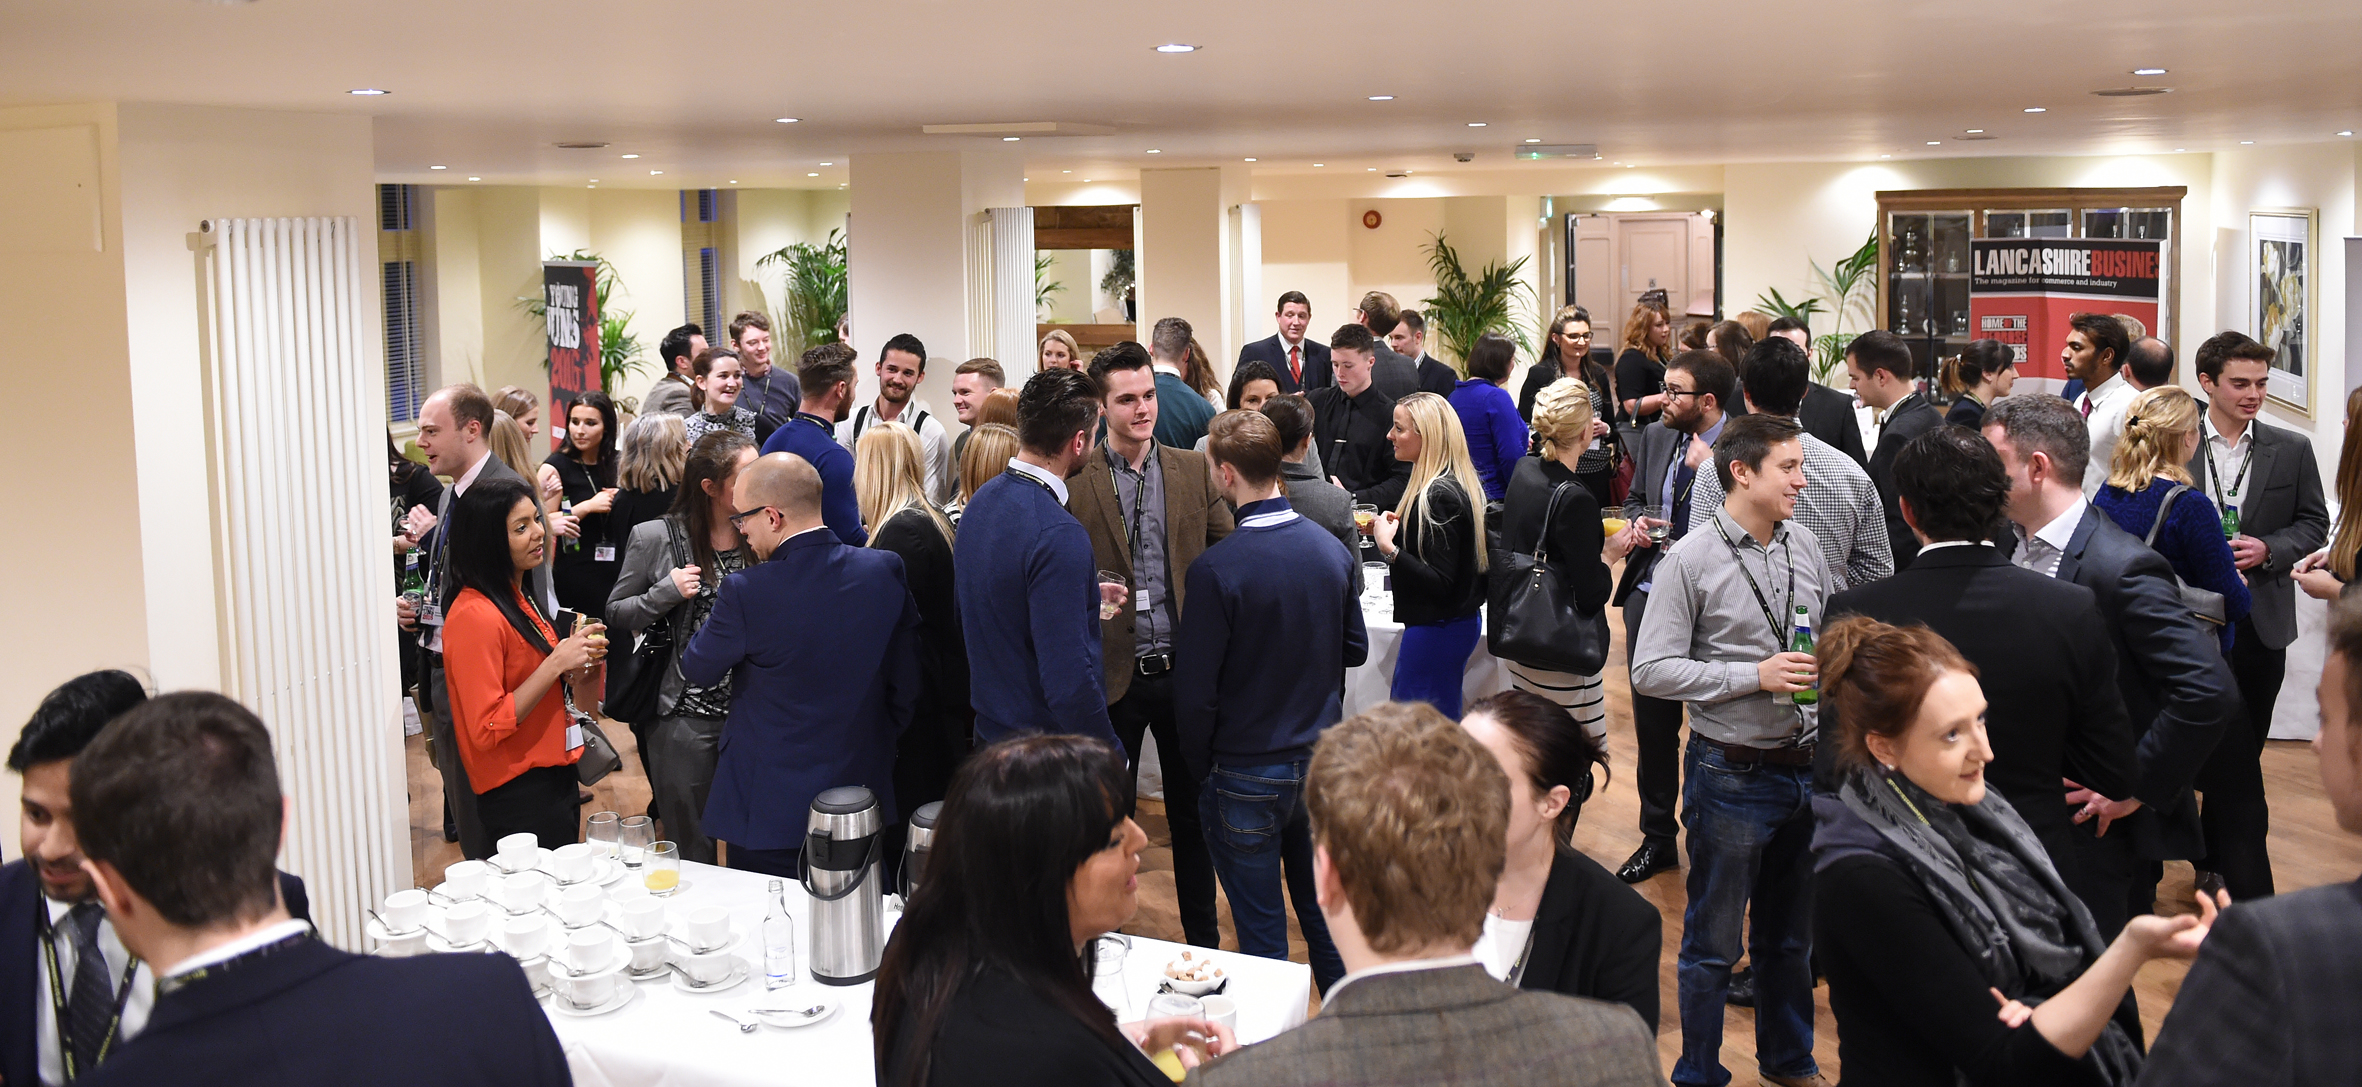 estate-agent-networking-events.jpg